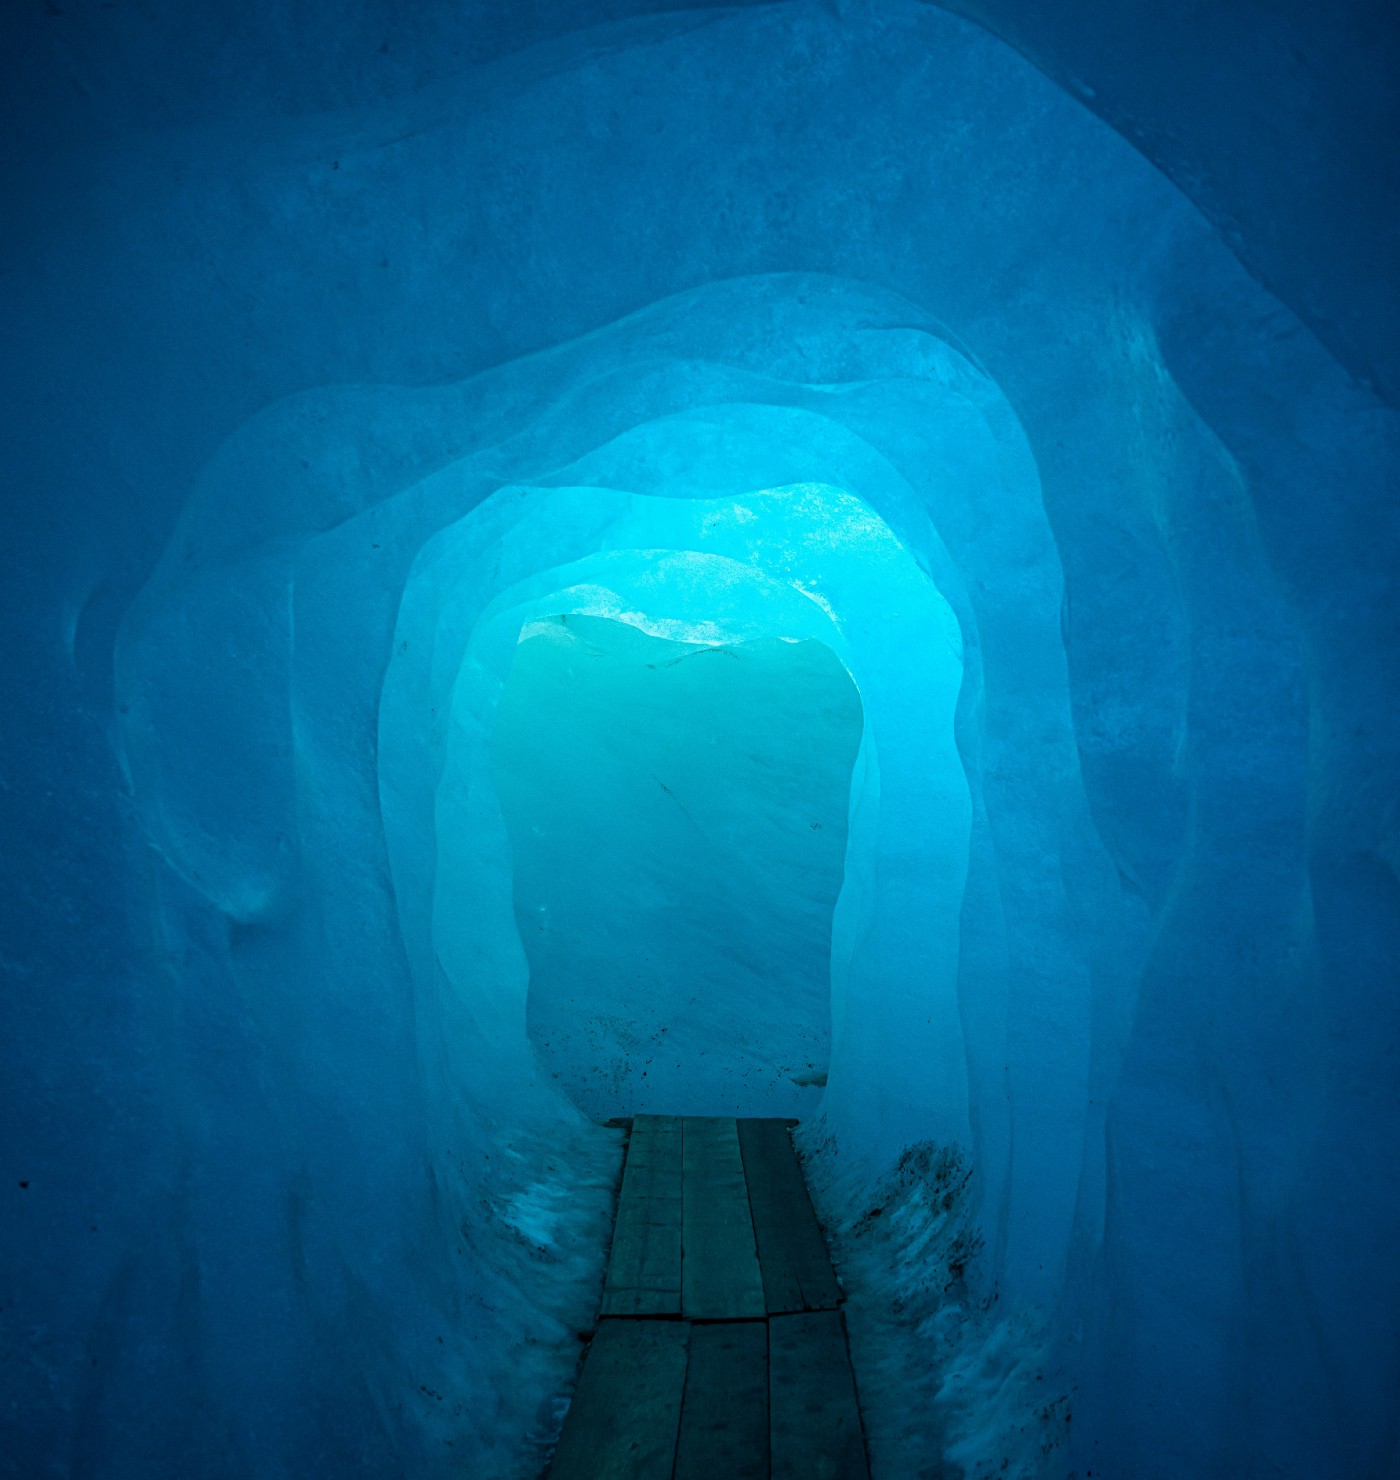 tunnel with layers of ice